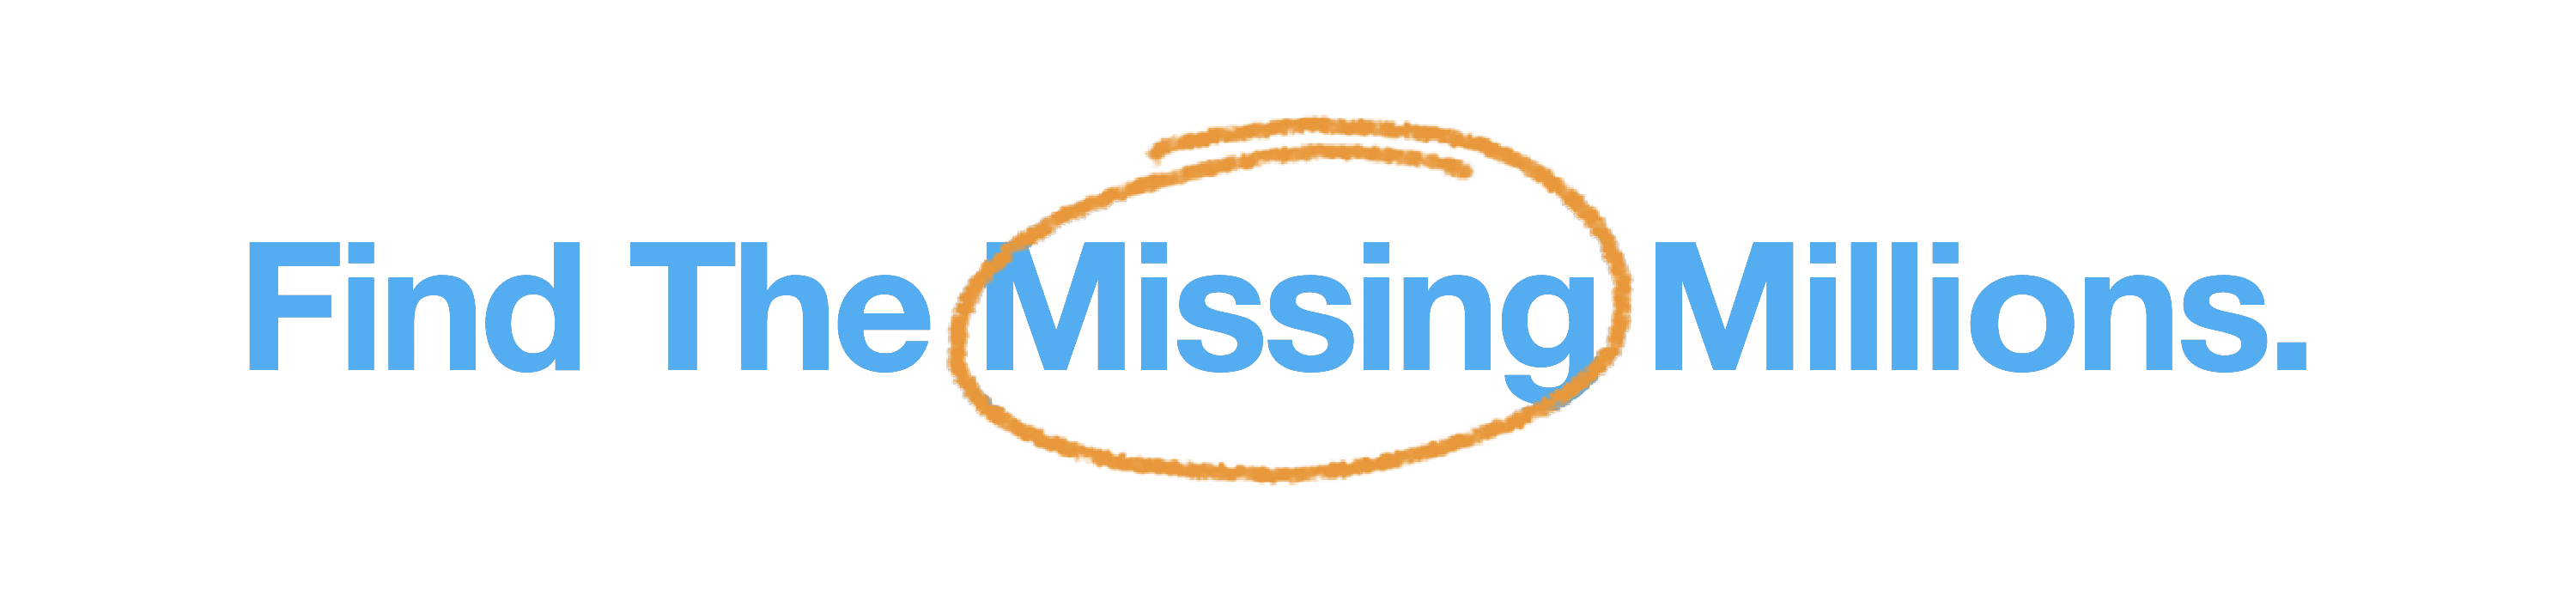 Find-the-Missing-Millions